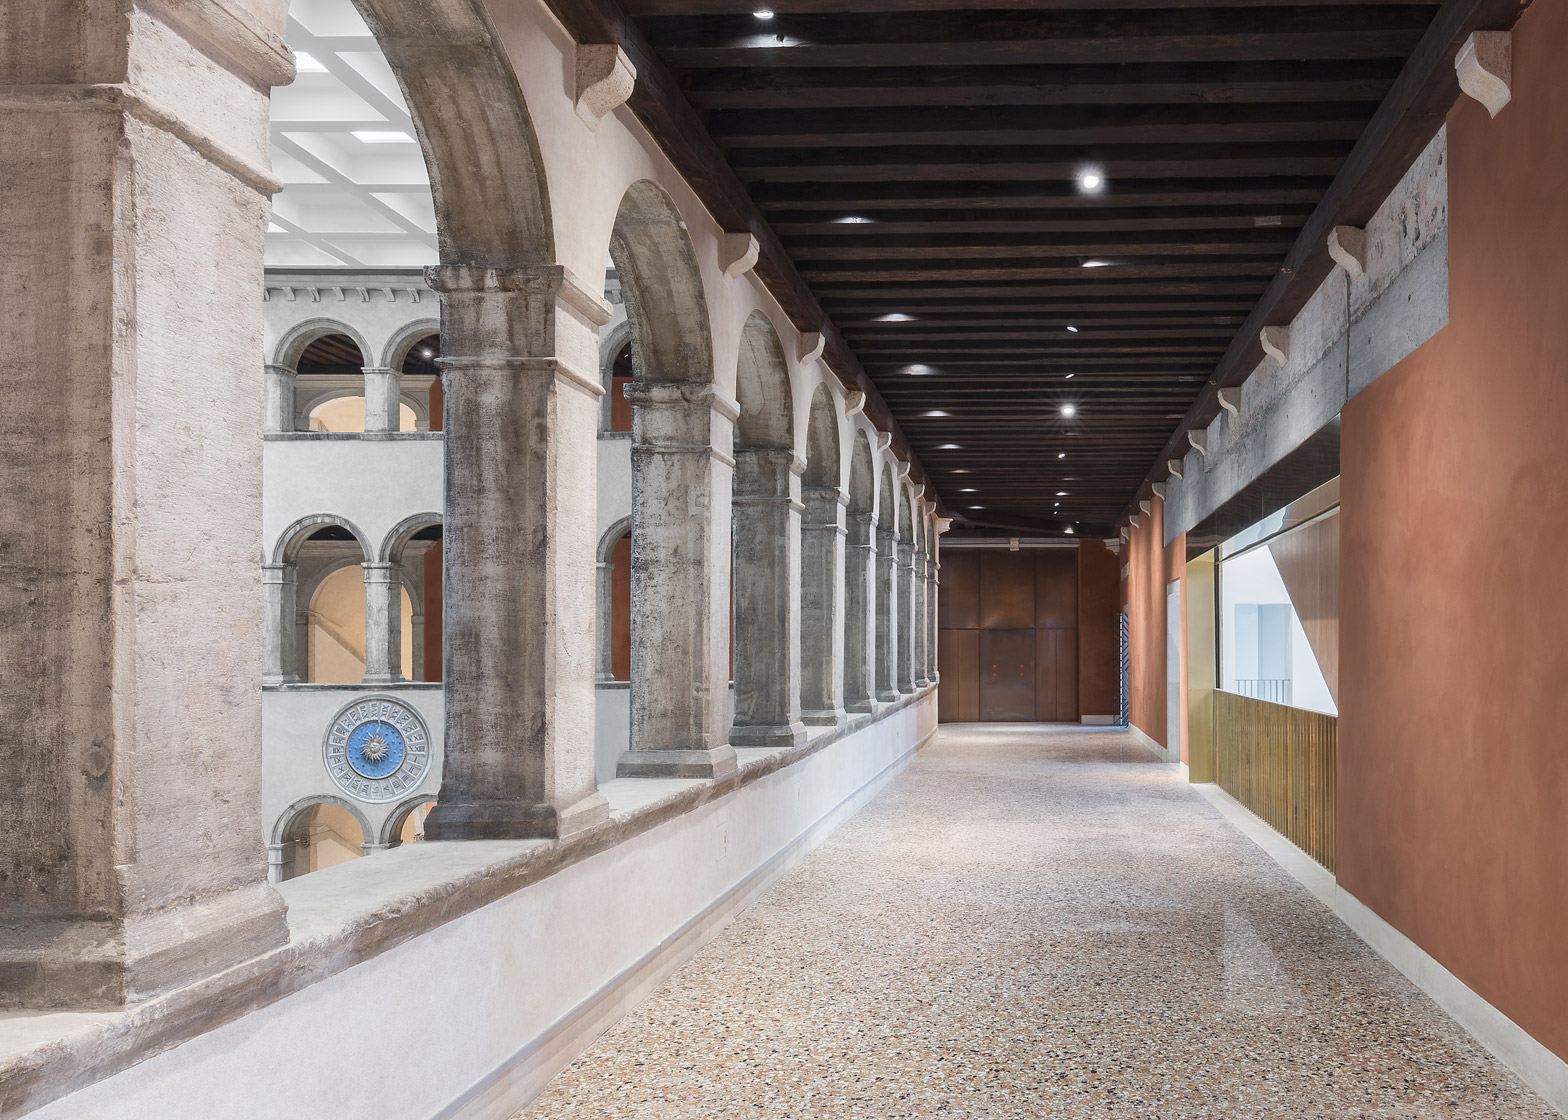 OMA restore the Fondaco dei Tedeschi building in Venice and redesign it as a department store